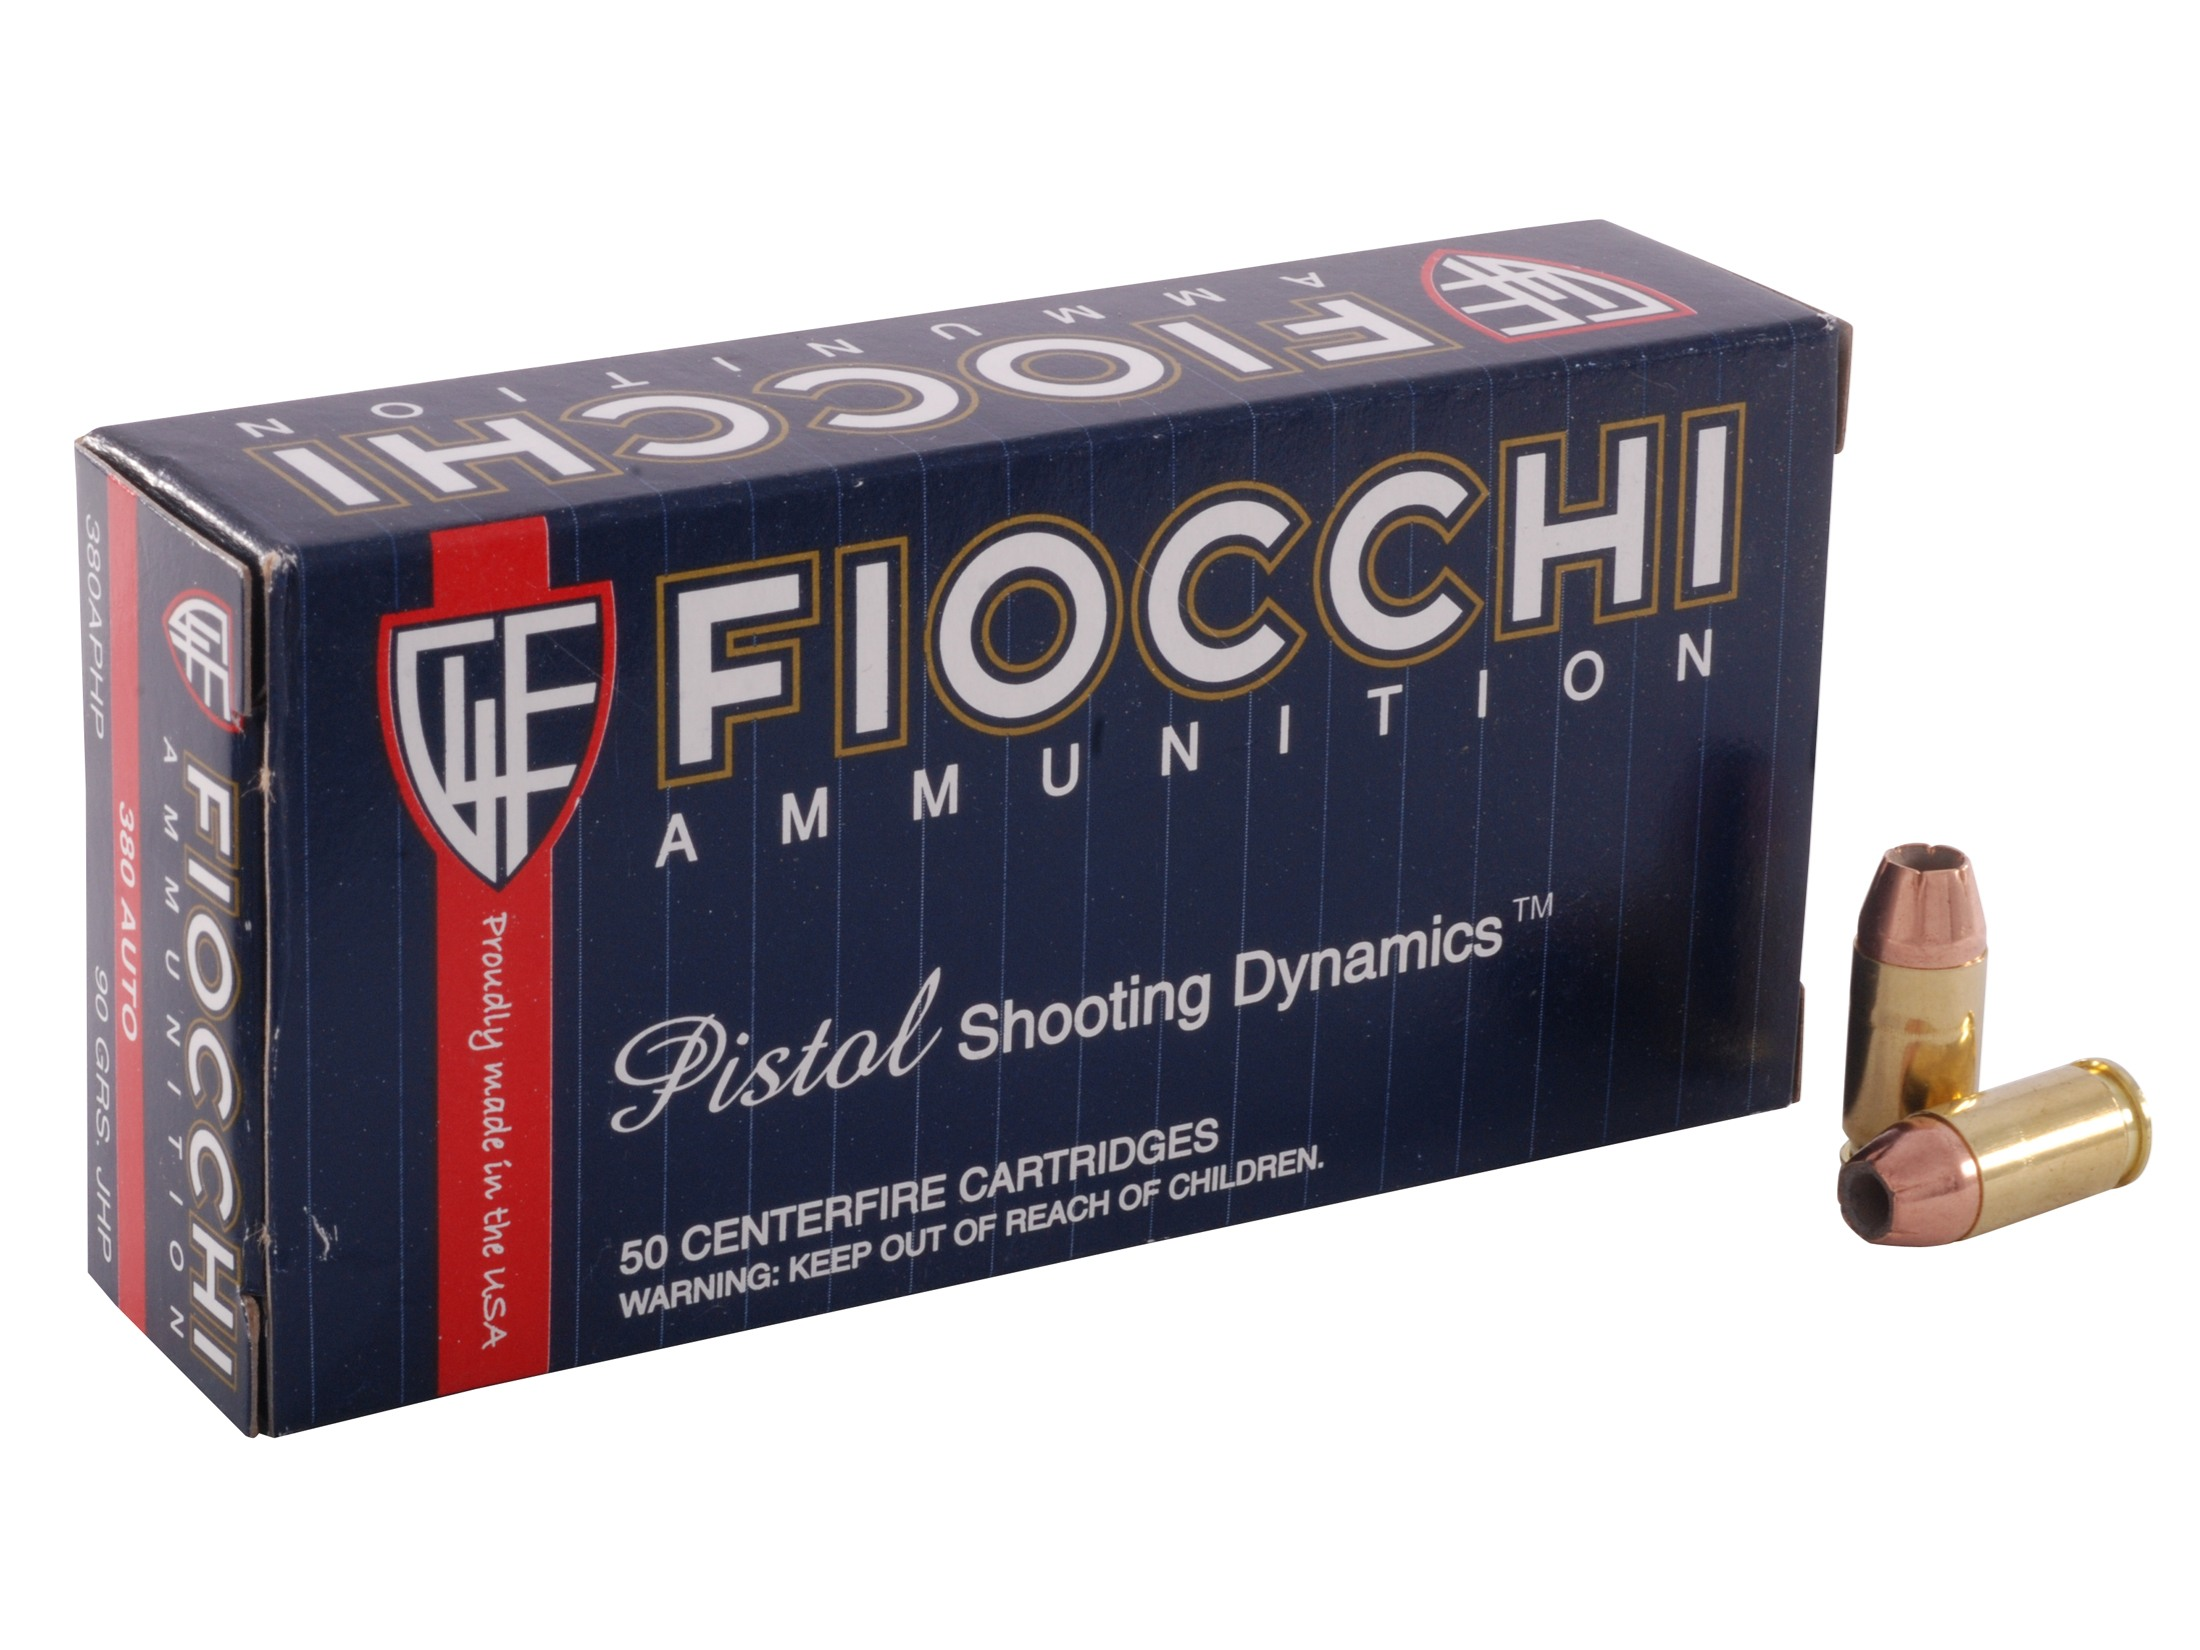 Fiocchi Shooting Dynamics 380 ACP 90 Grain Jacketed Hollow Point Ammunition, 50 Per Box